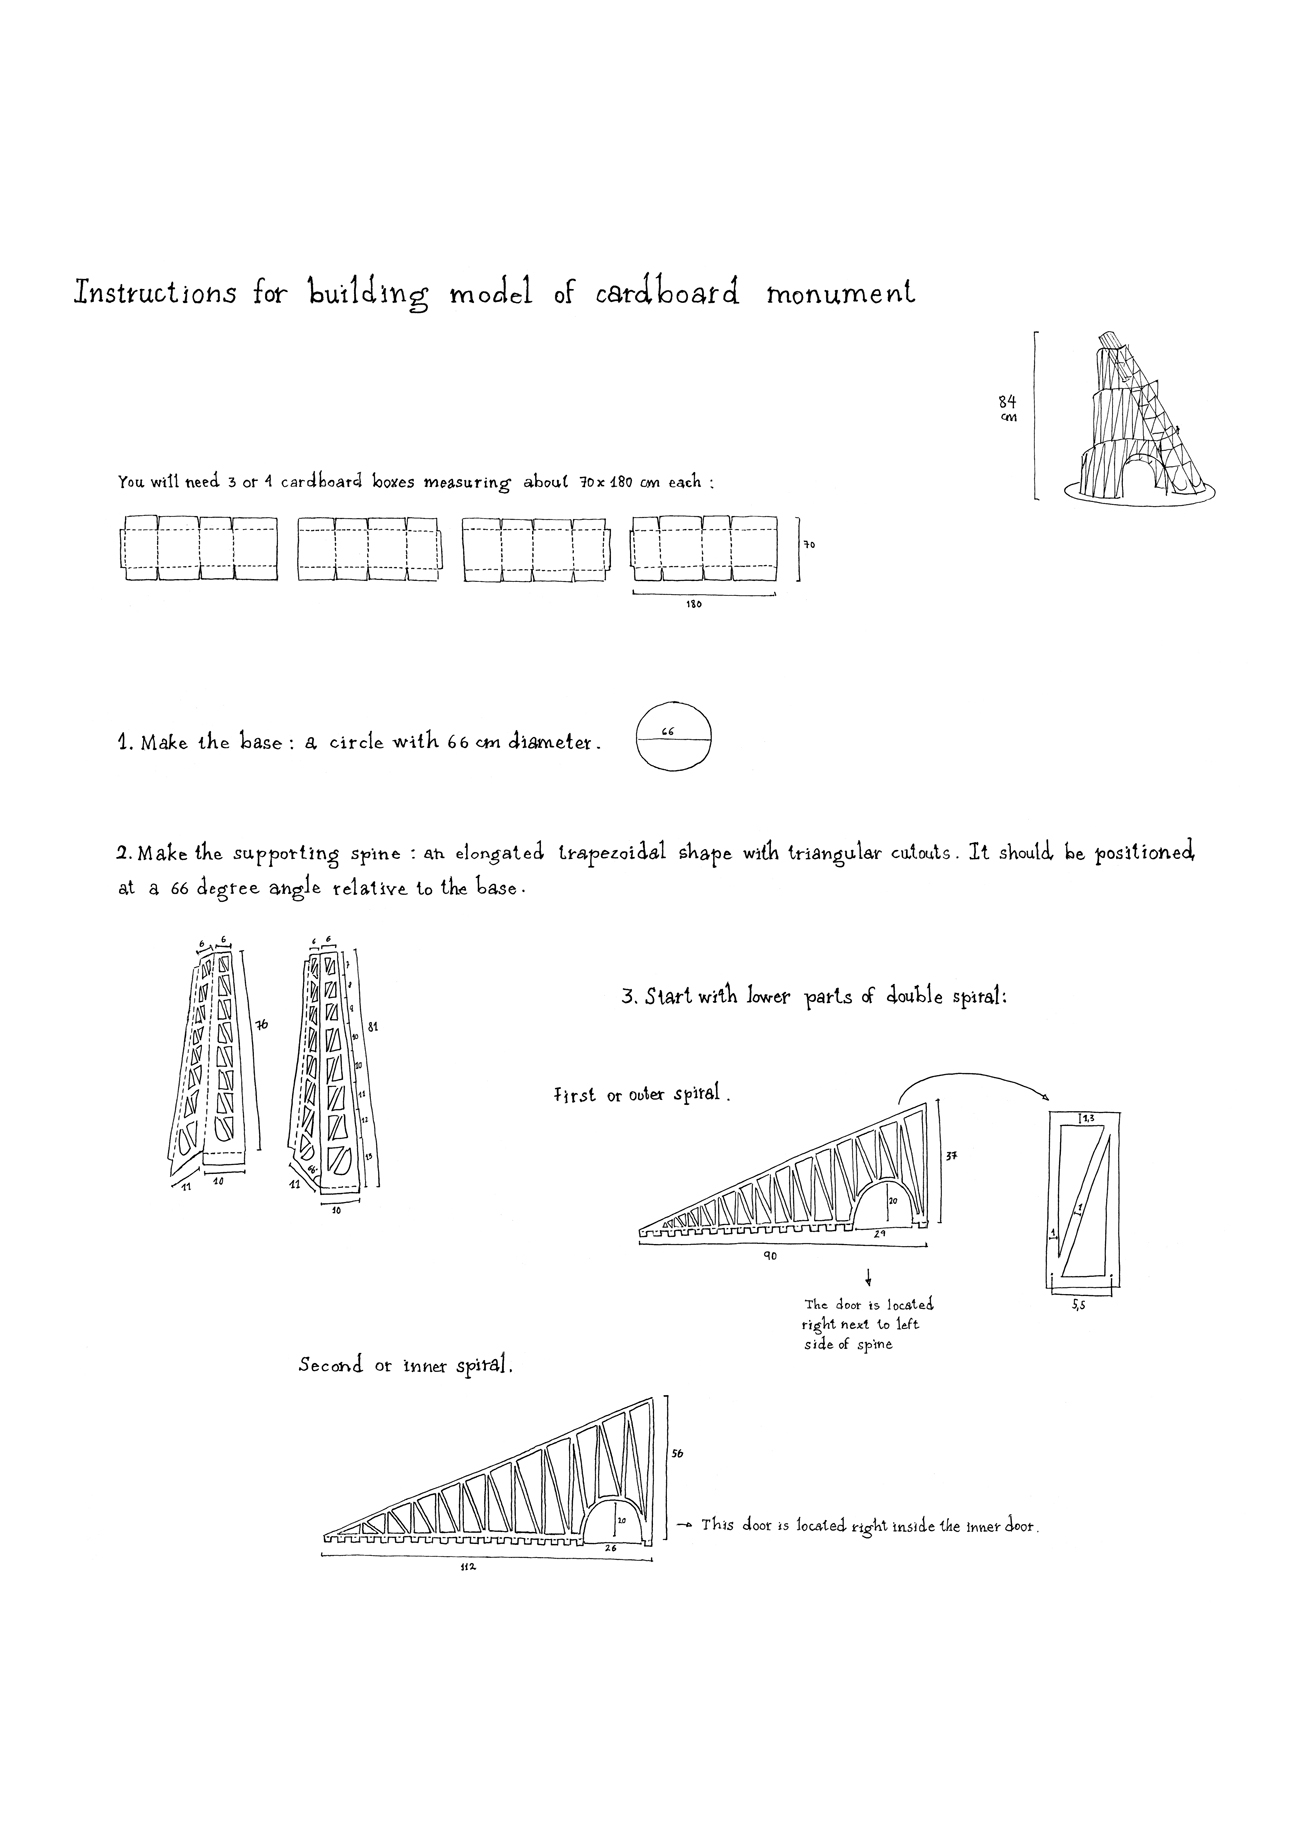 instructions for building cardboard monument